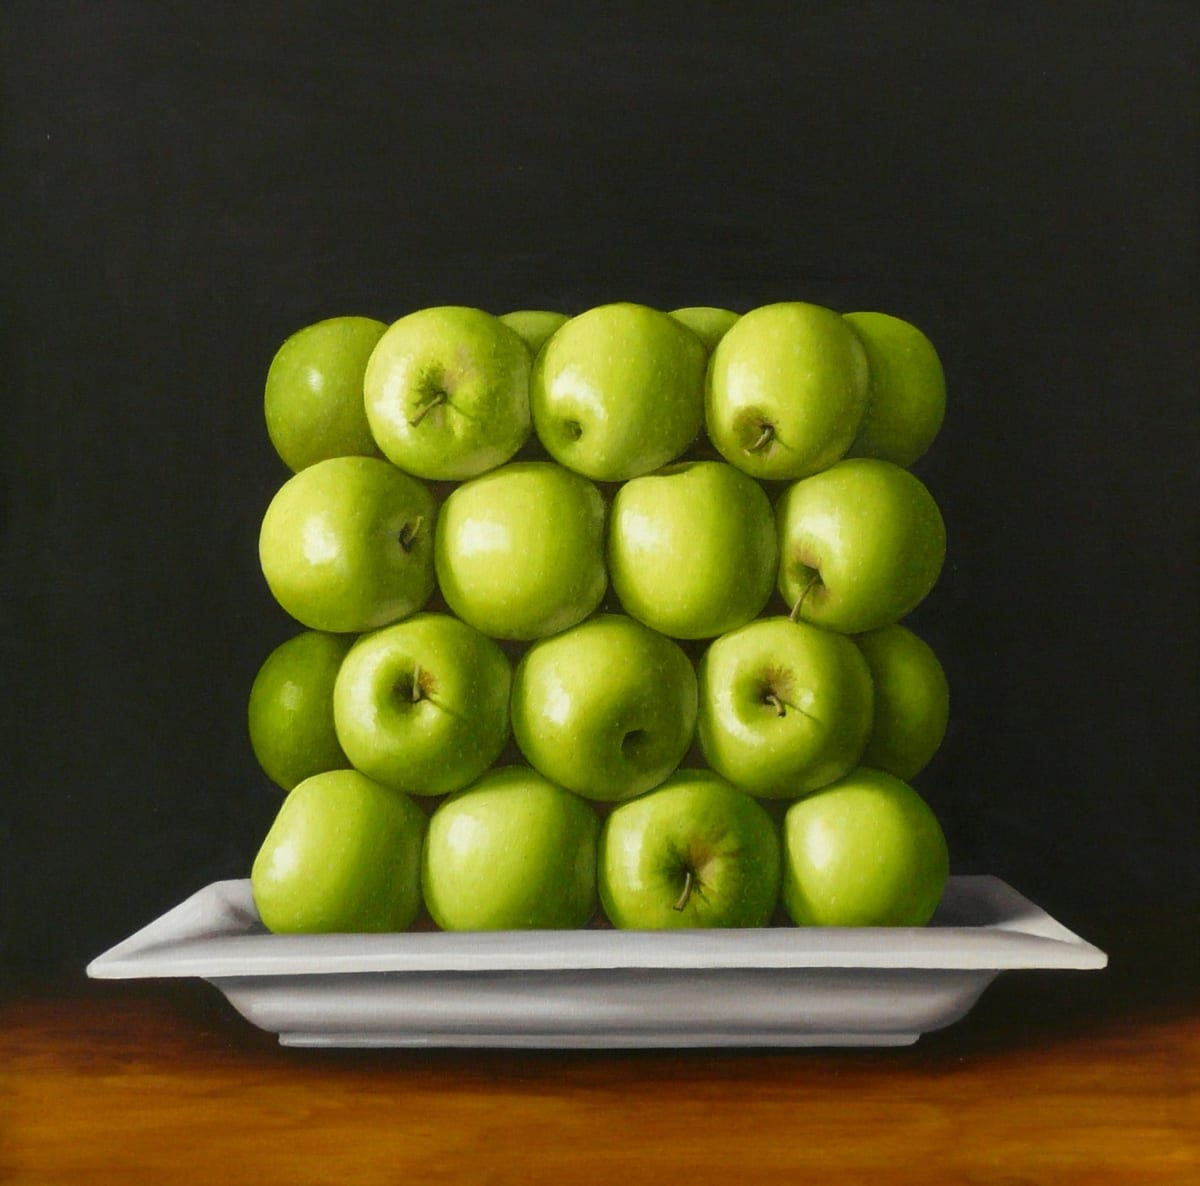 Antonia Williams Green Square Apples Oil on canvas 76 x 76 cm